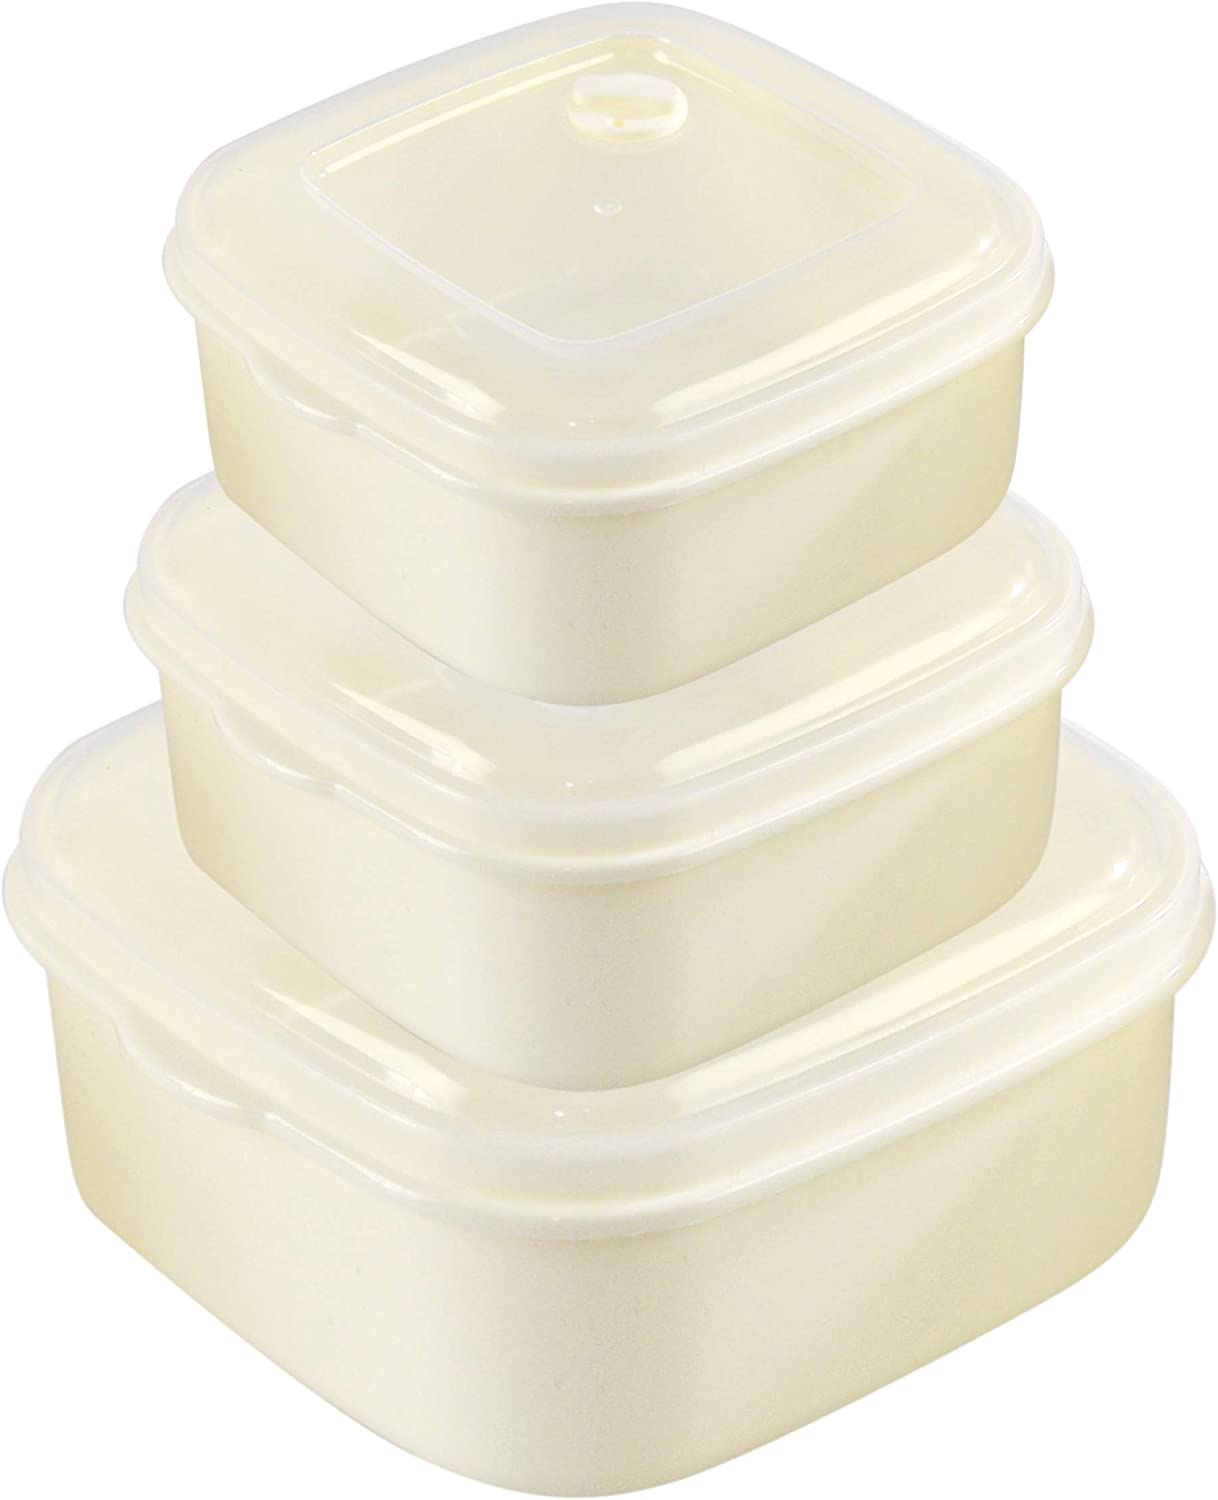 HOME-X Square Food Storage Containers, Microwave Cookware, Easy Storage – 15 oz / 27 oz / 50 oz Capacity - Set of 3 – Cream